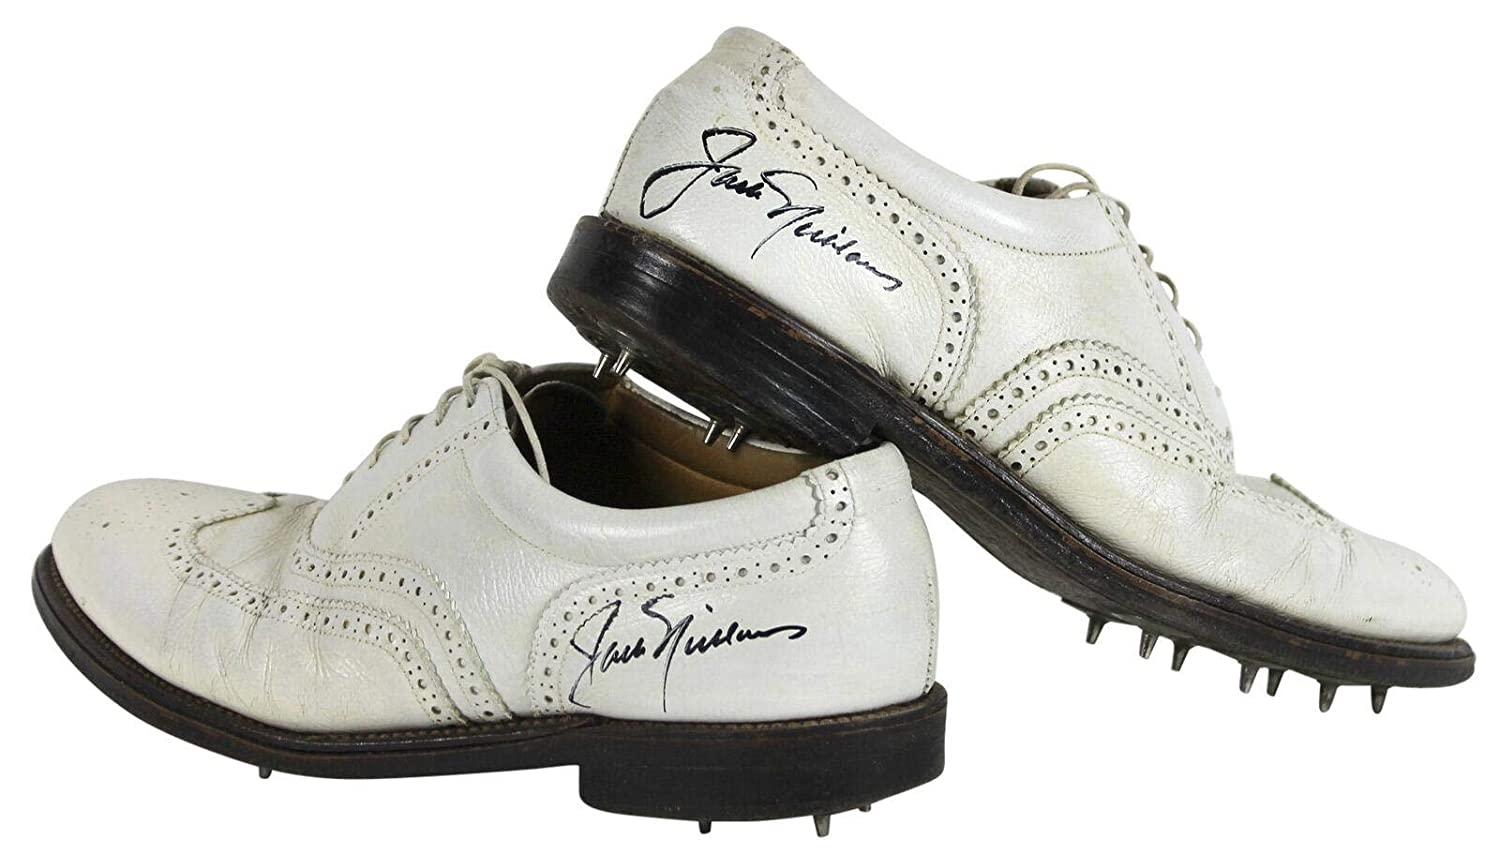 Jack Nicklaus Signed 1986 Masters Worn Golf Spikes #AB09370 - PSA/DNA Certified - Autographed Golf Shoes